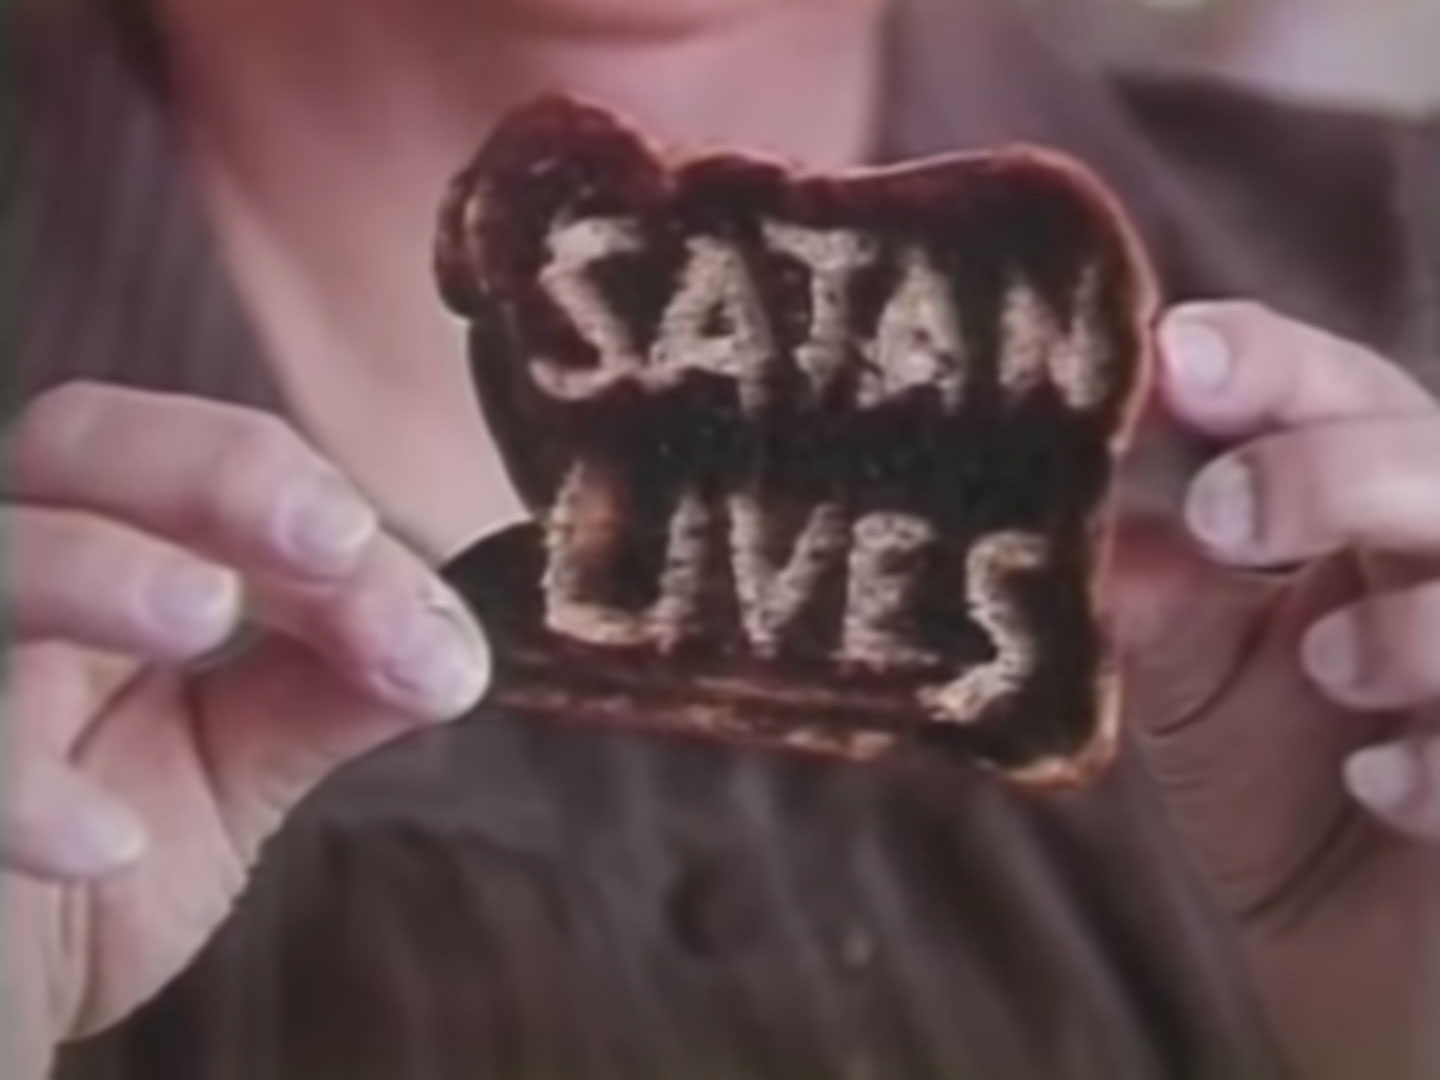 Satanic toast made by a haunted toaster